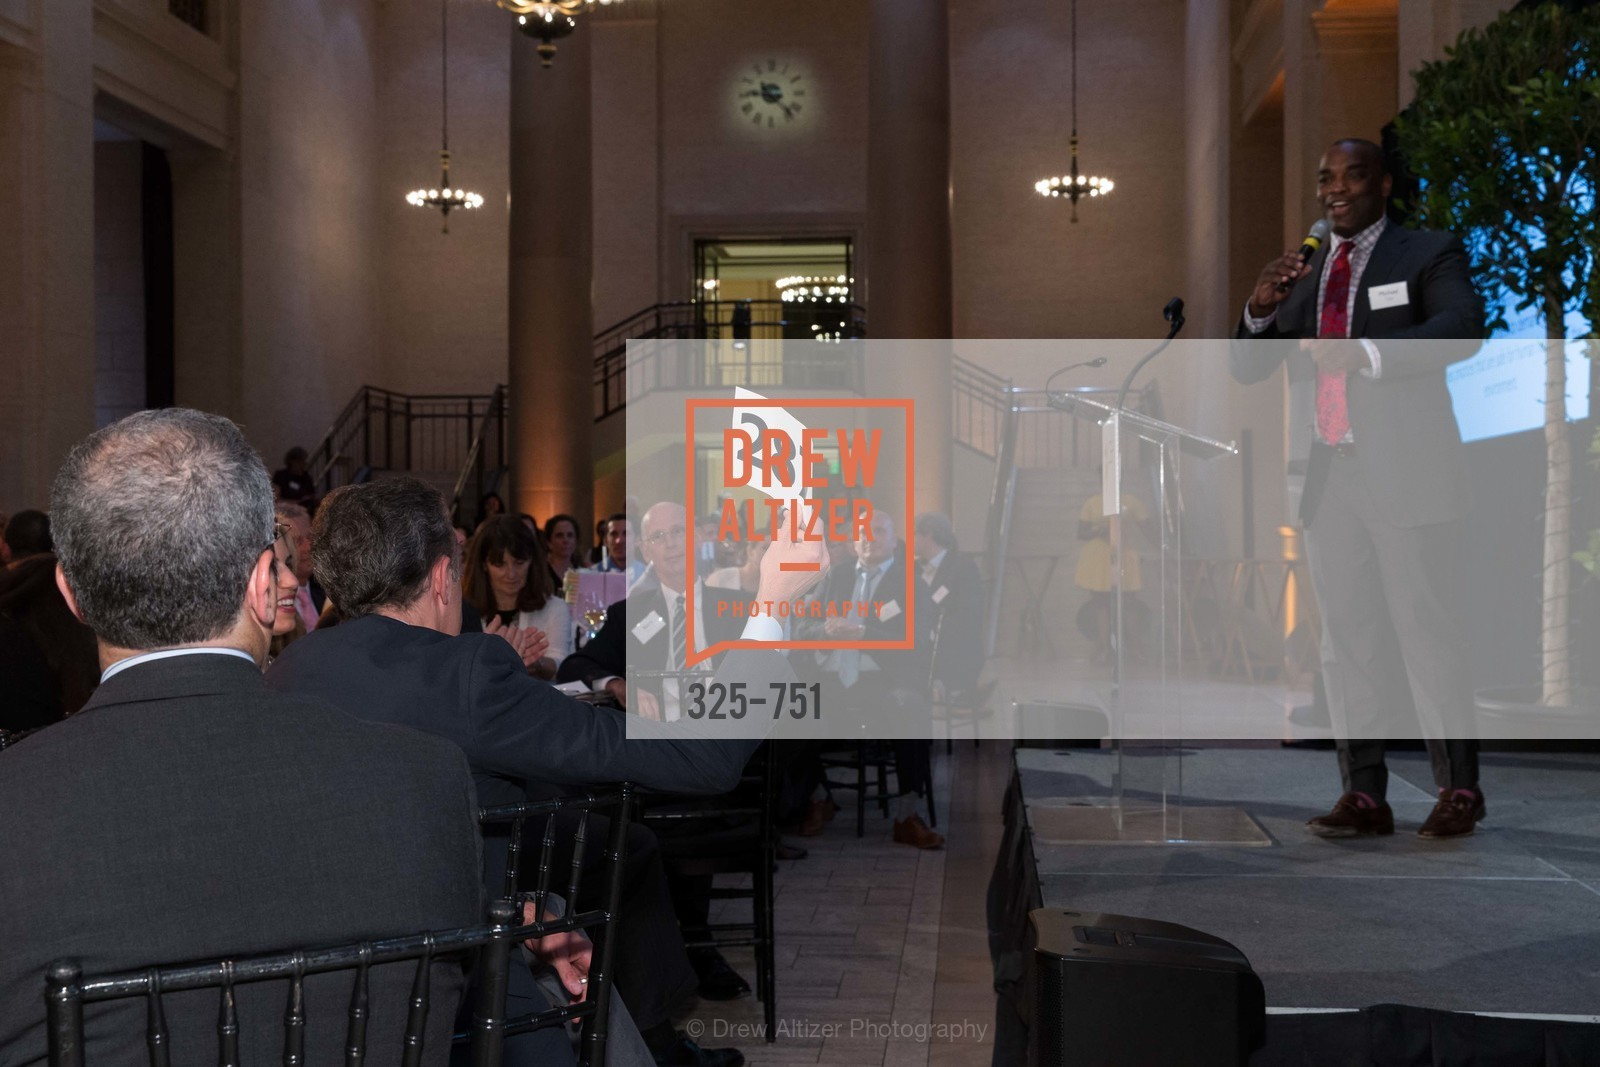 Atmosphere, CENTER FOR ENVIRONMENTAL HEALTH (CEH) 2015 Gala, US, May 28th, 2015,Drew Altizer, Drew Altizer Photography, full-service agency, private events, San Francisco photographer, photographer california